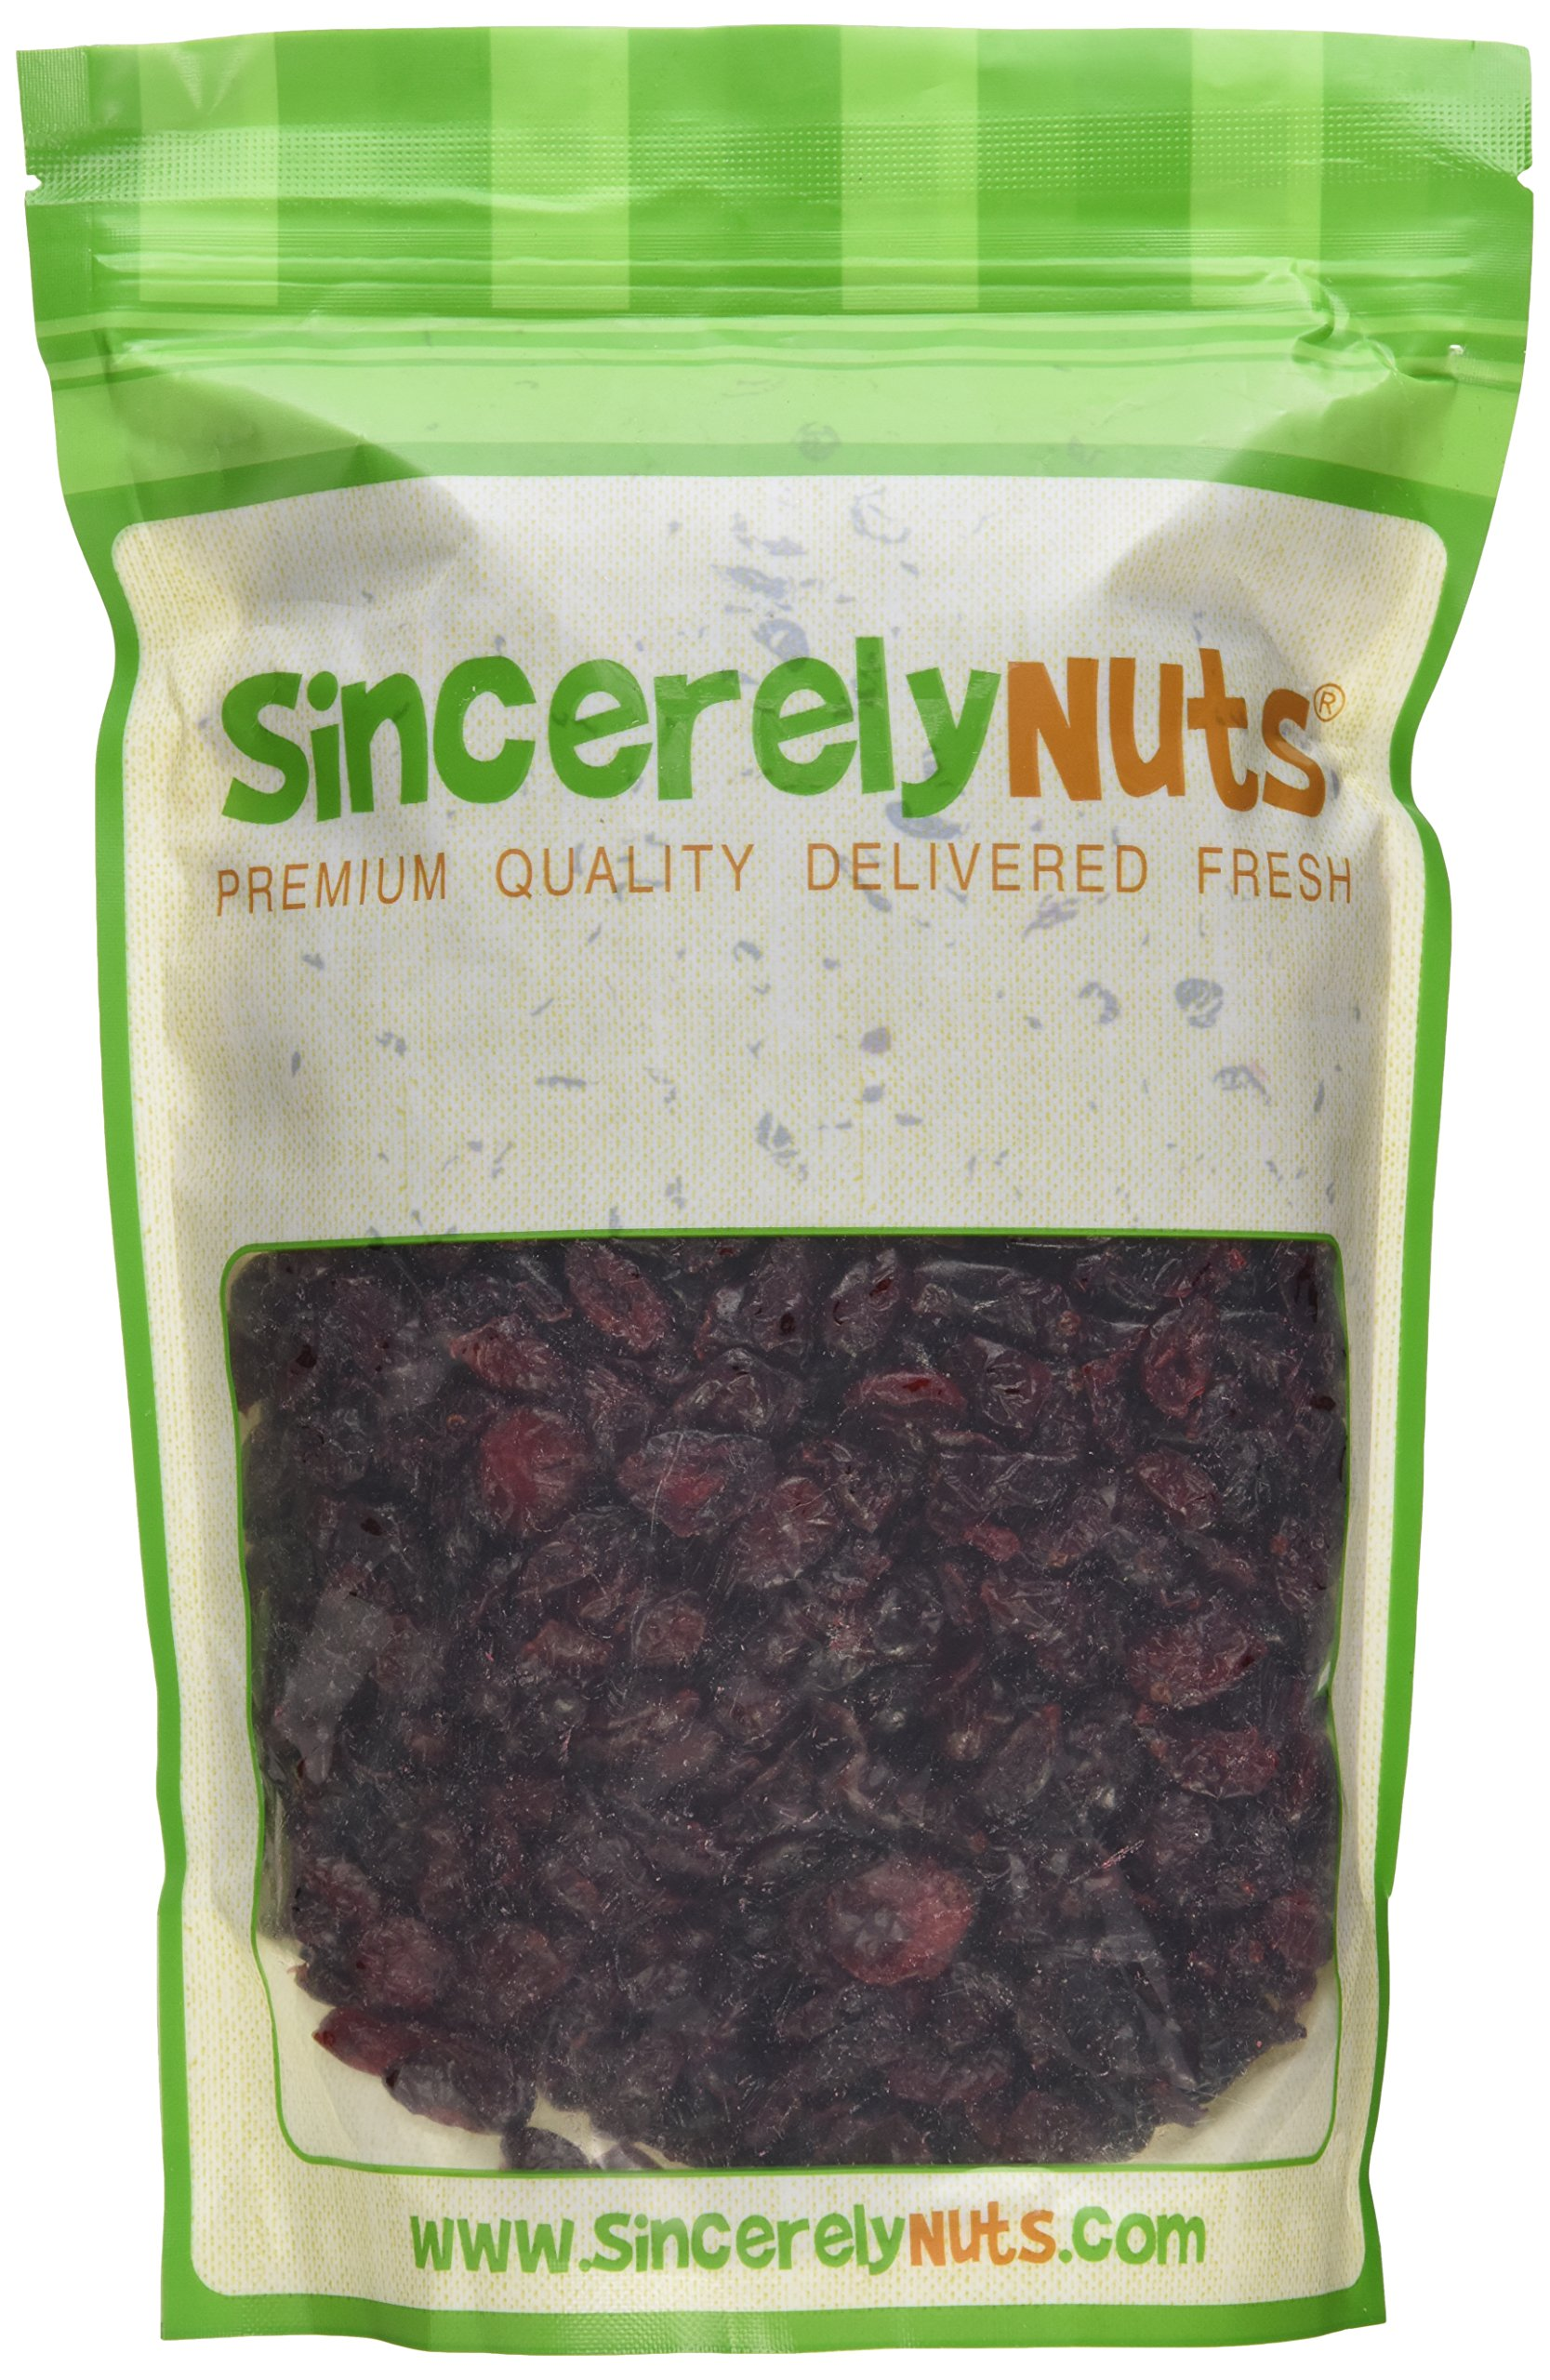 Sincerely Nuts Dried Sweetened Cranberries (2 LB) Vegan, Kosher & Gluten-Free Food-Dried Fruit Snack-Healthy Addition to Your Favorite Meals-Nutrient Rich Alternative Treat for the Whole Family by Sincerely Nuts (Image #2)